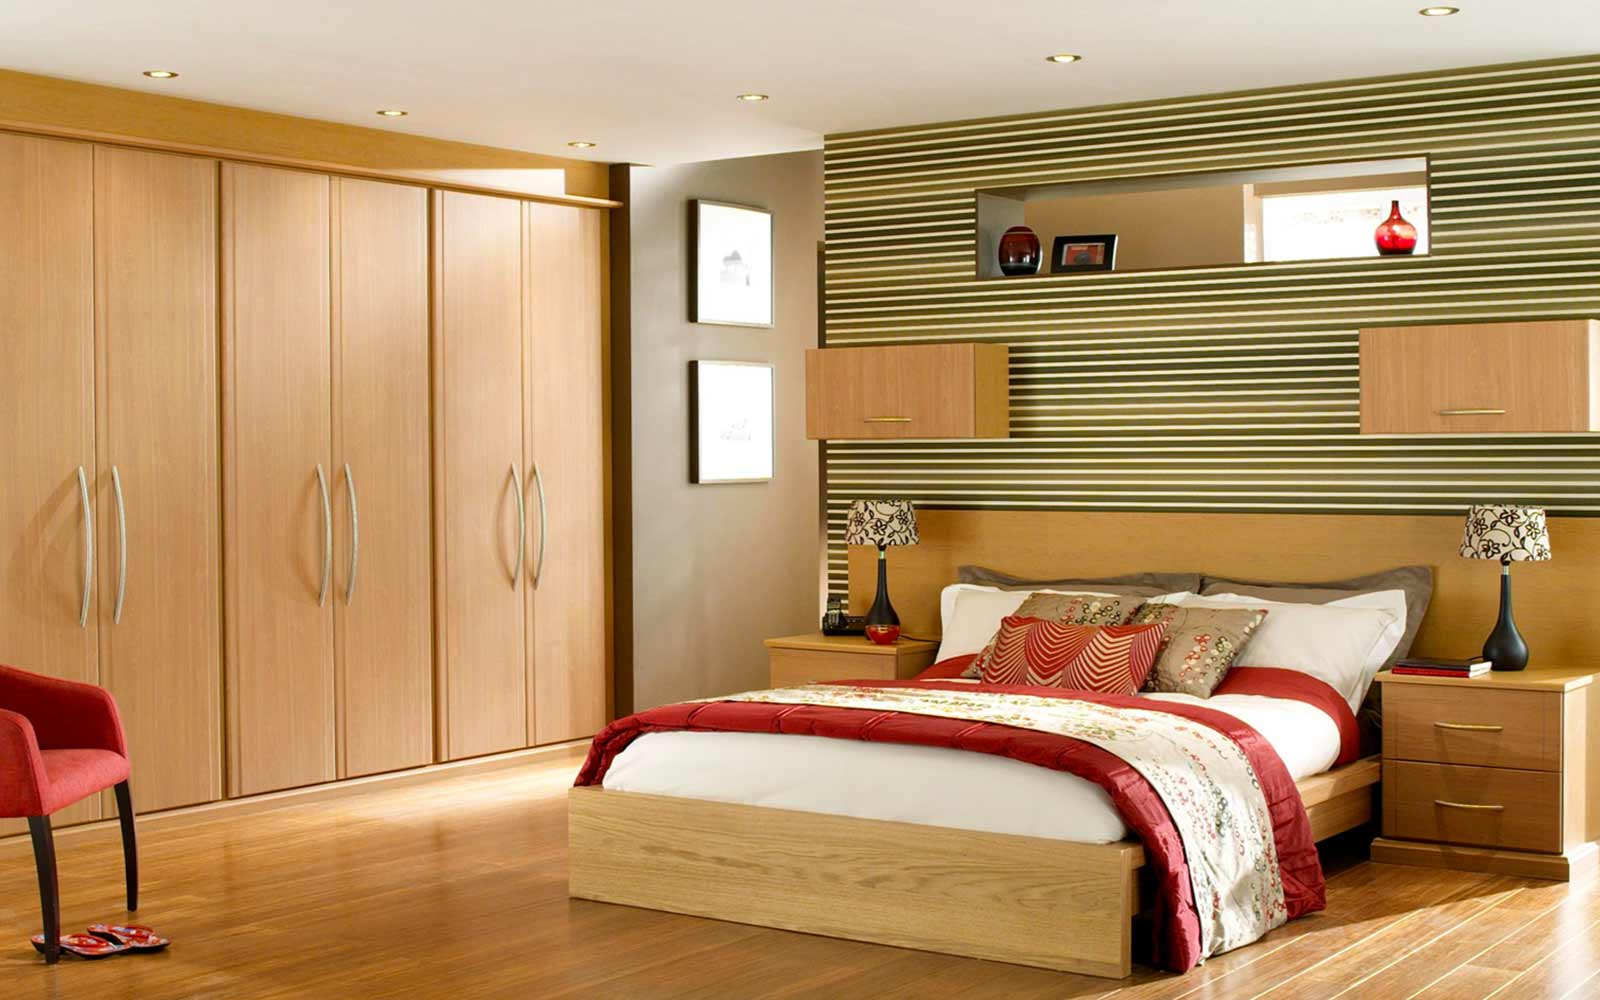 35 images of wardrobe designs for bedrooms Bedroom designs india